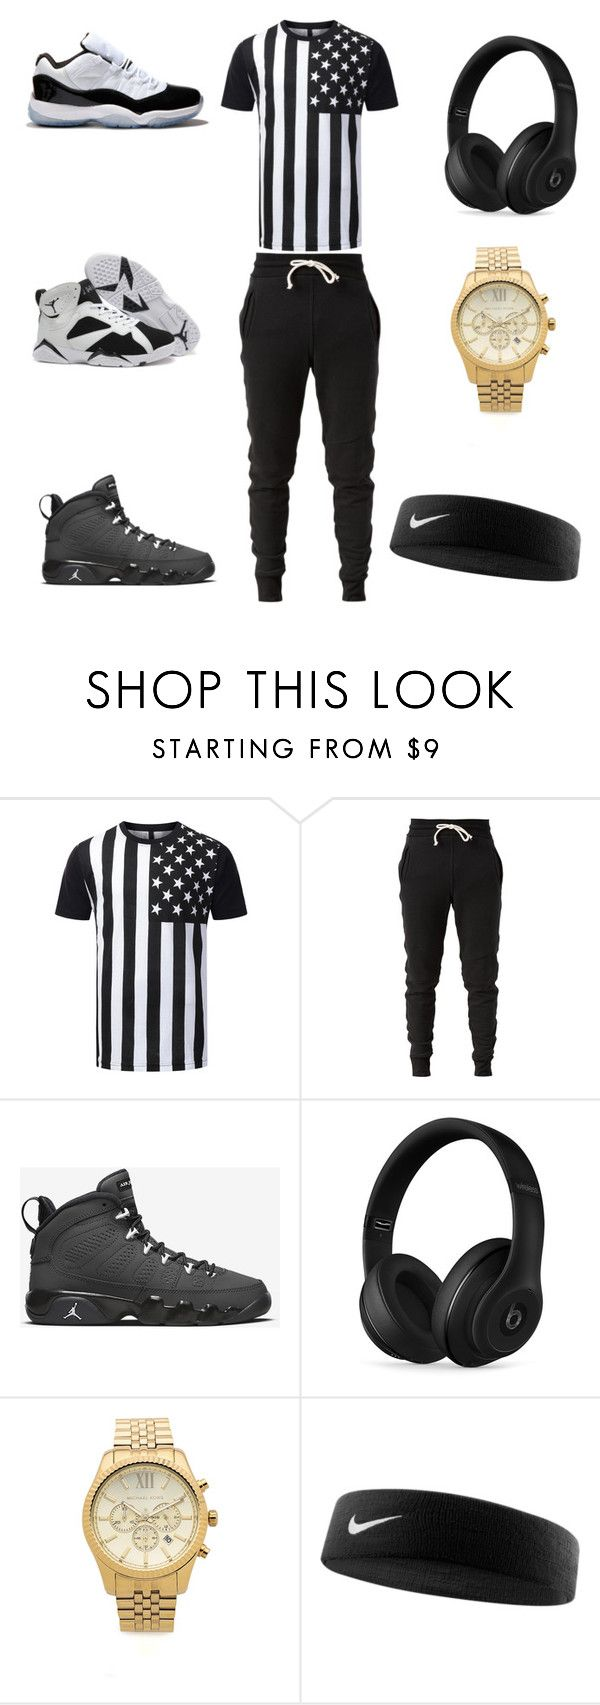 """all american"" by aleisharodriguez ❤ liked on Polyvore featuring John Elliott, Concord, Beats by Dr. Dre, Michael Kors, NIKE, men's fashion and menswear"